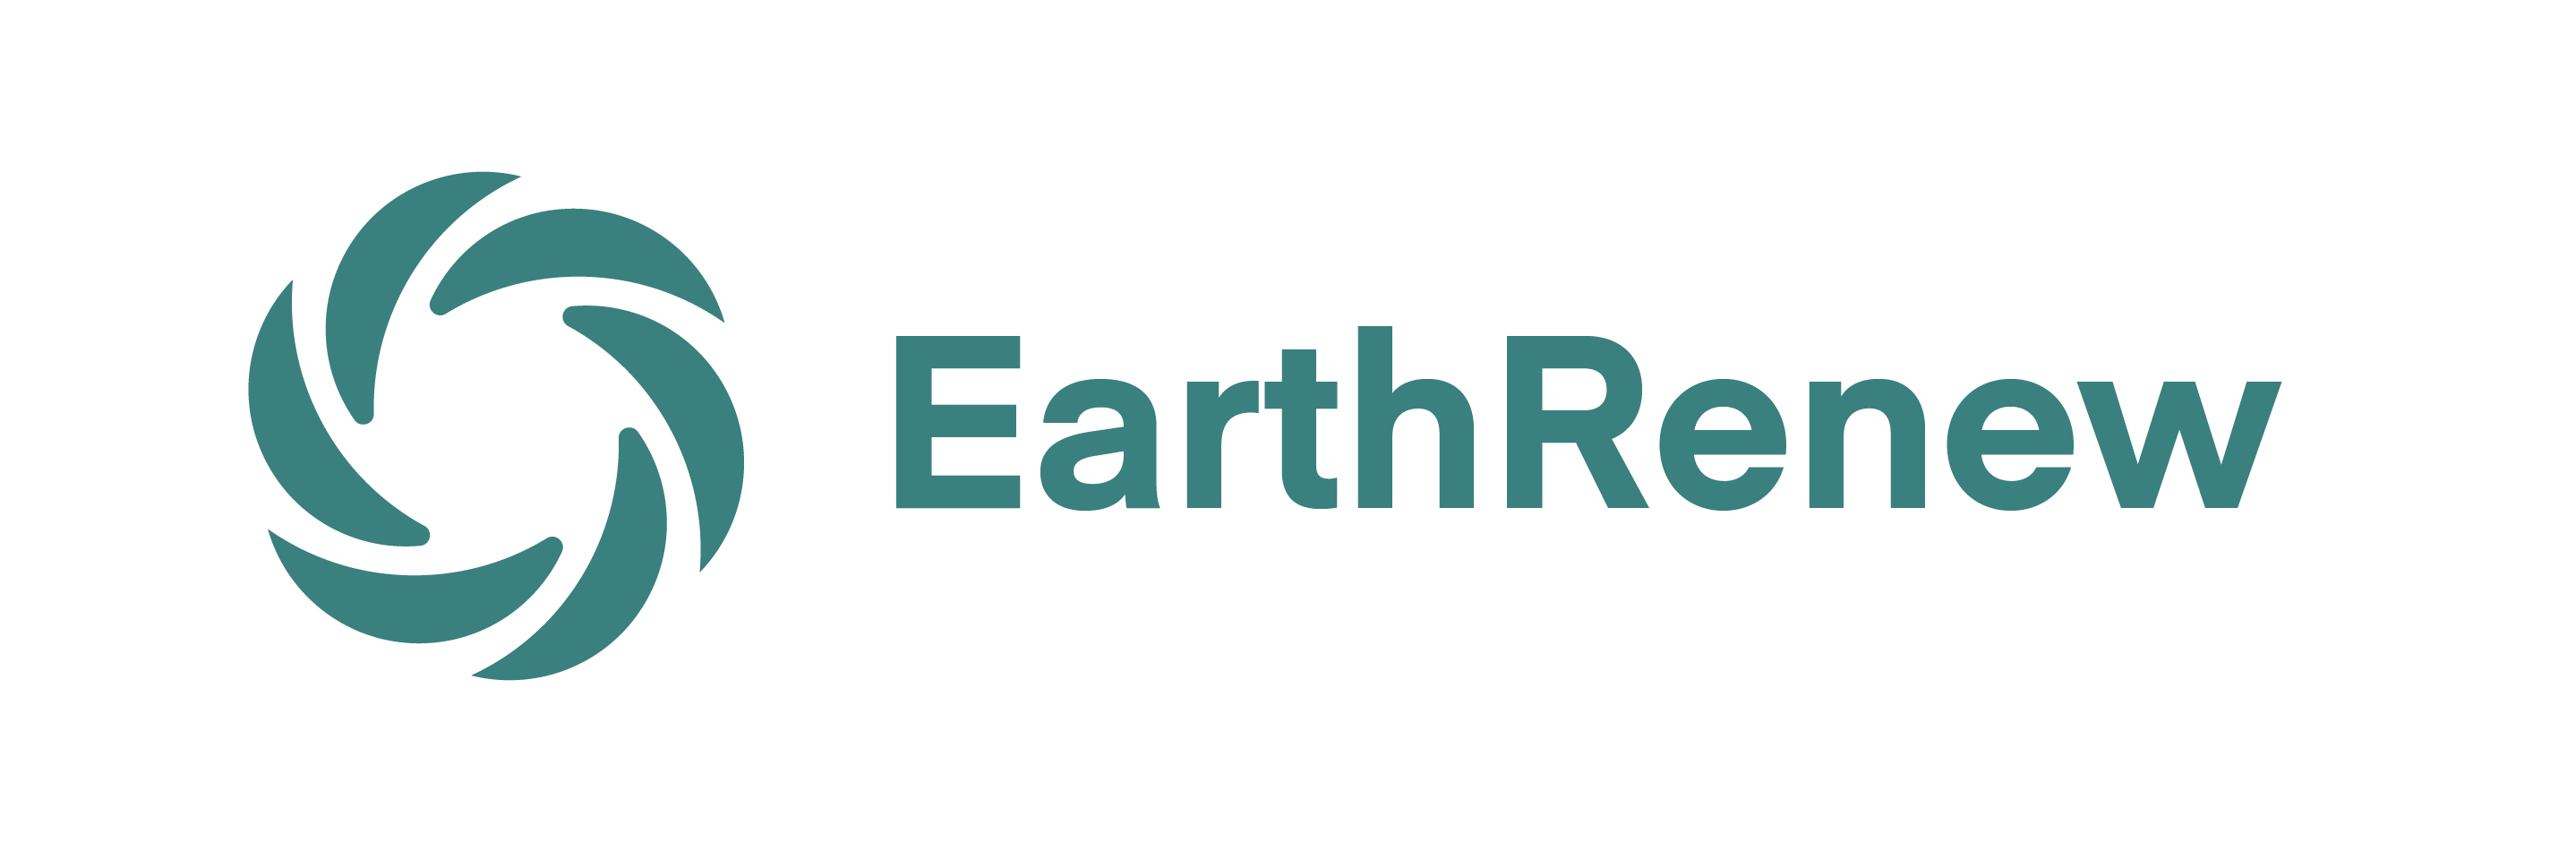 EarthRenew Announces Production of New Pellet Formulations for Field Trials This Spring